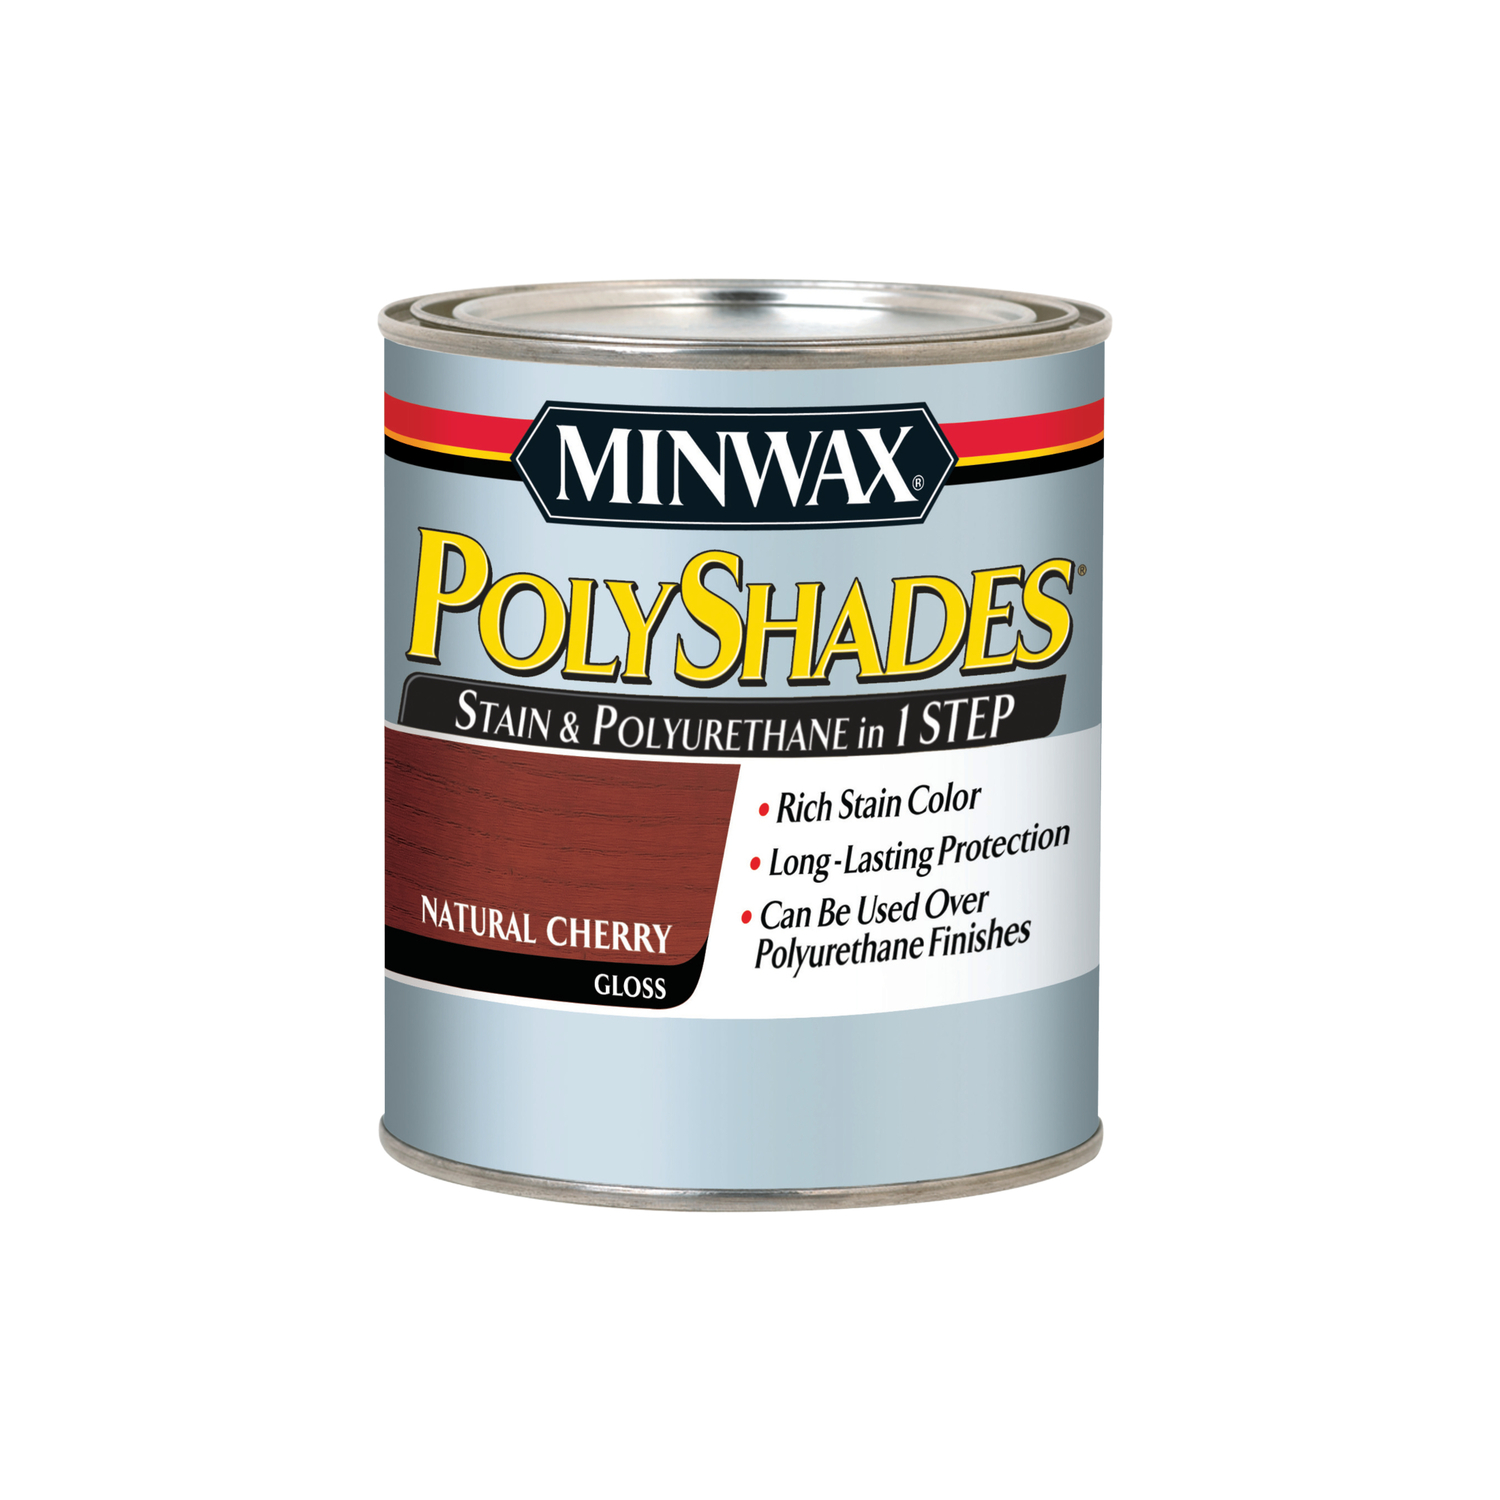 Minwax  PolyShades  Semi-Transparent  Gloss  Natural Cherry  Oil-Based  Polyurethane Stain  1 qt.